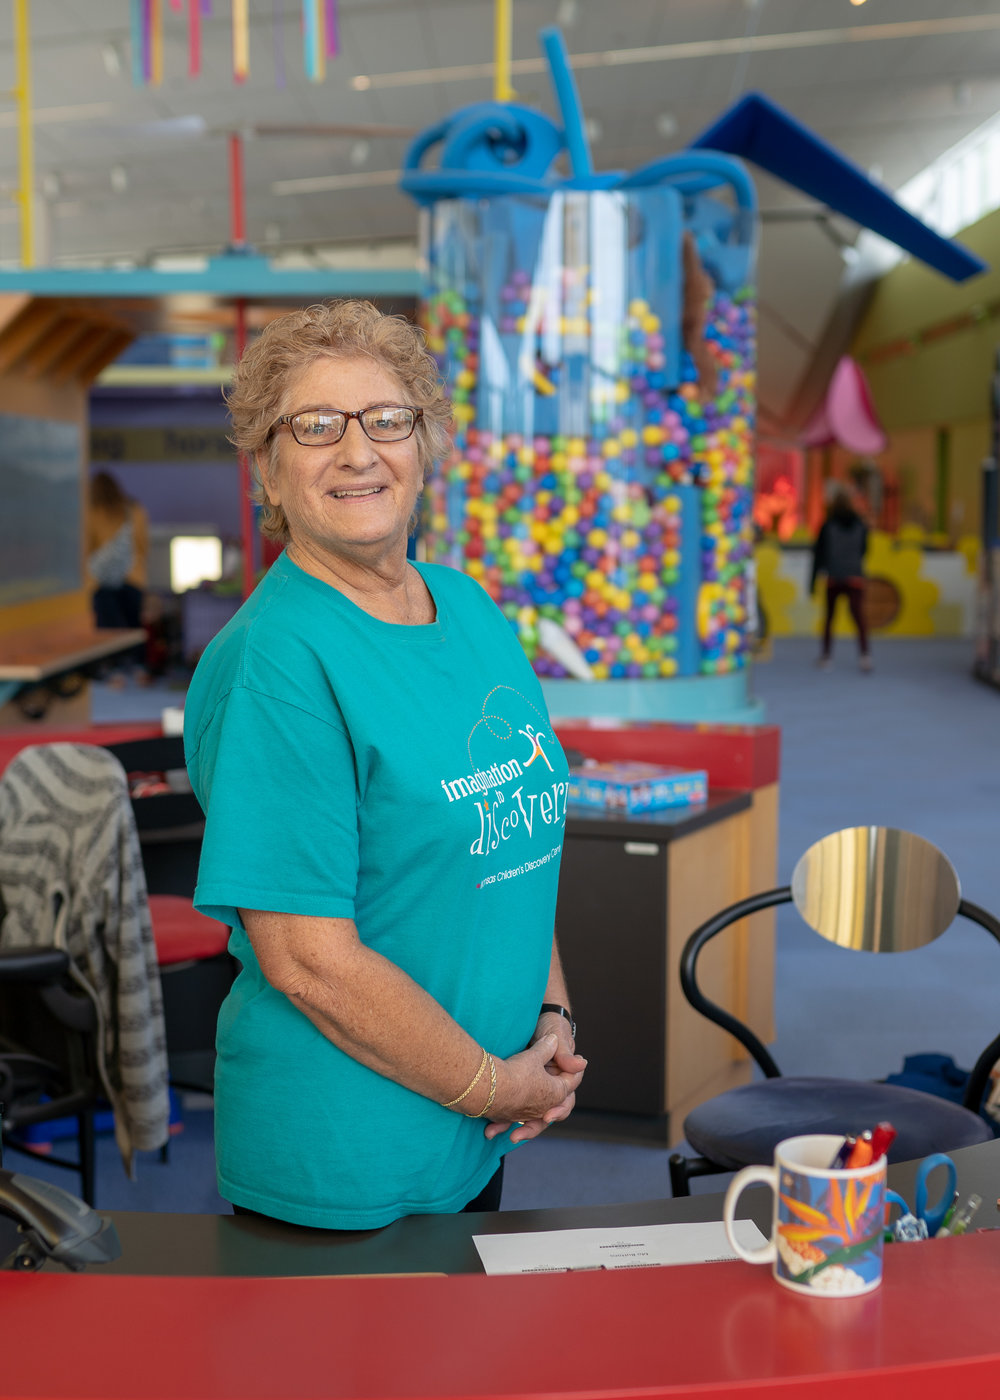 Topeka, Kansas—Molly Wisman volunteers at the front desk at the Kansas Children's Discovery Center. © James Gorman